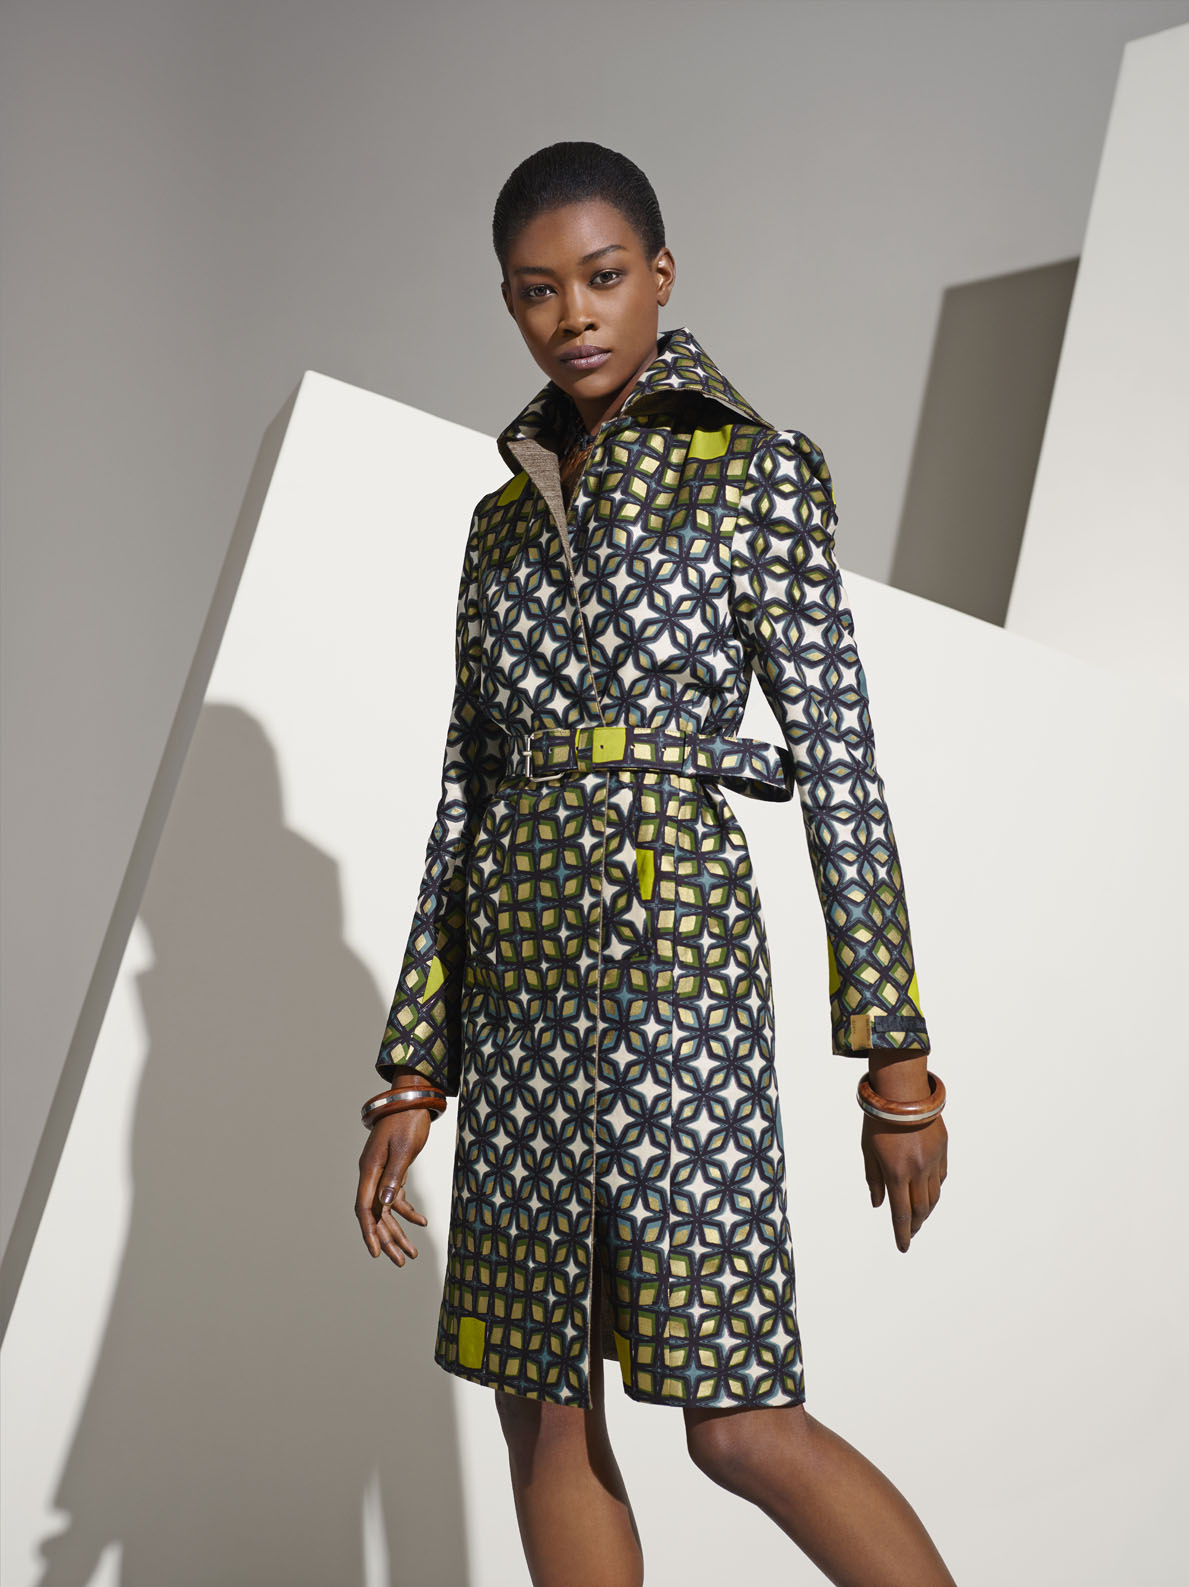 #Afrocentric: V-Inspired looks by Vlisco